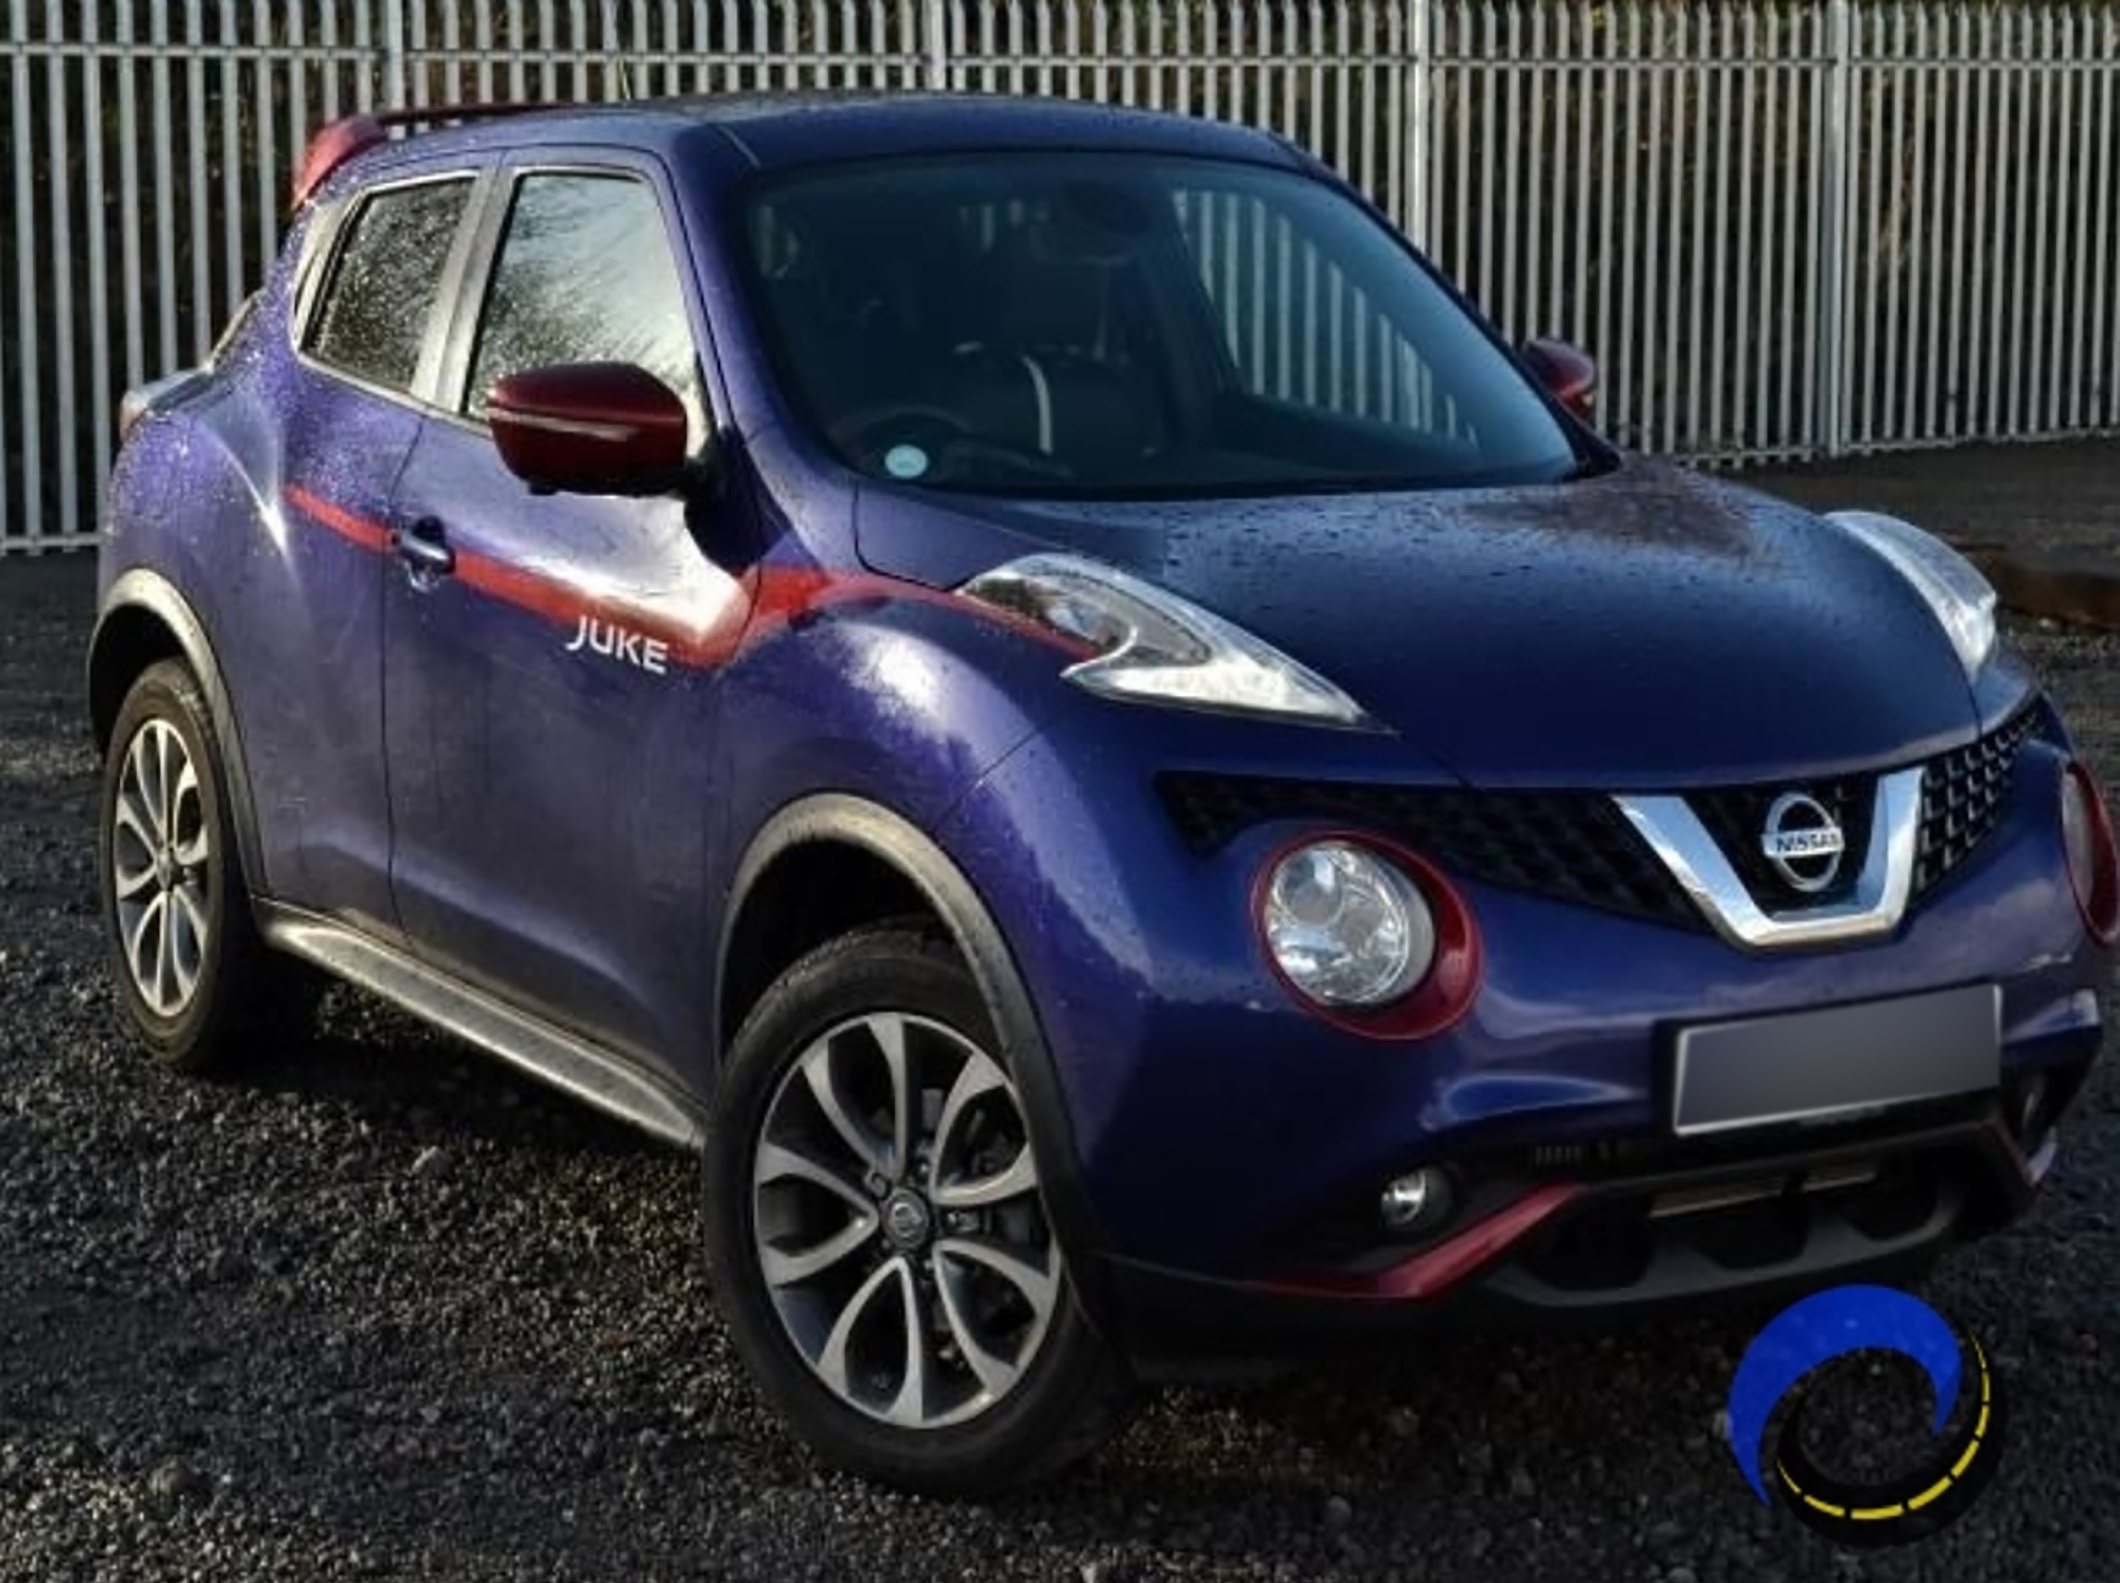 The blue Nissan Juke which Catherine Quinn and her husband Kevin thought they were buying online for £5,600 but it was never delivered